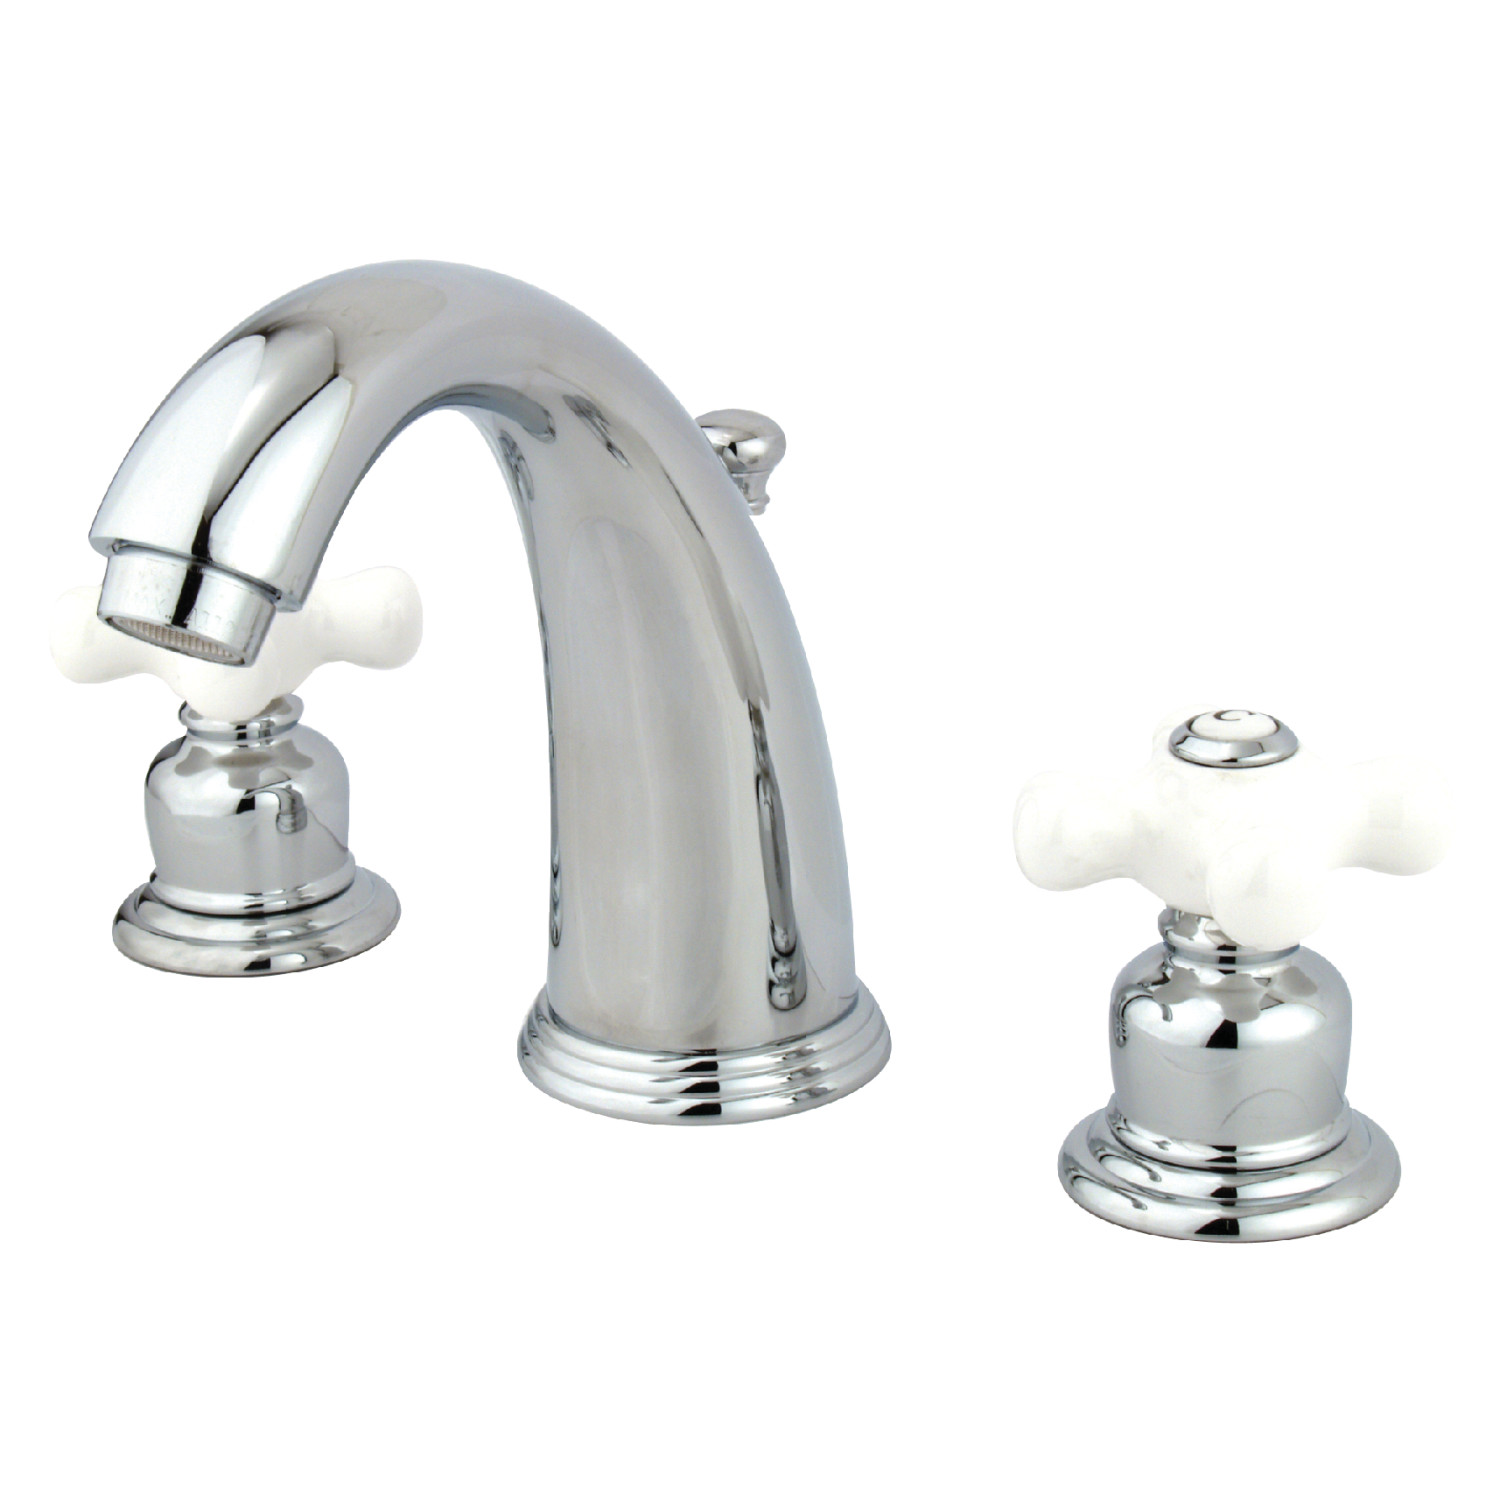 Vintage 2-Handle 3-Hole Deck Mounted Widespread Bathroom Faucet with Plastic Pop-Up in Polished Chrome